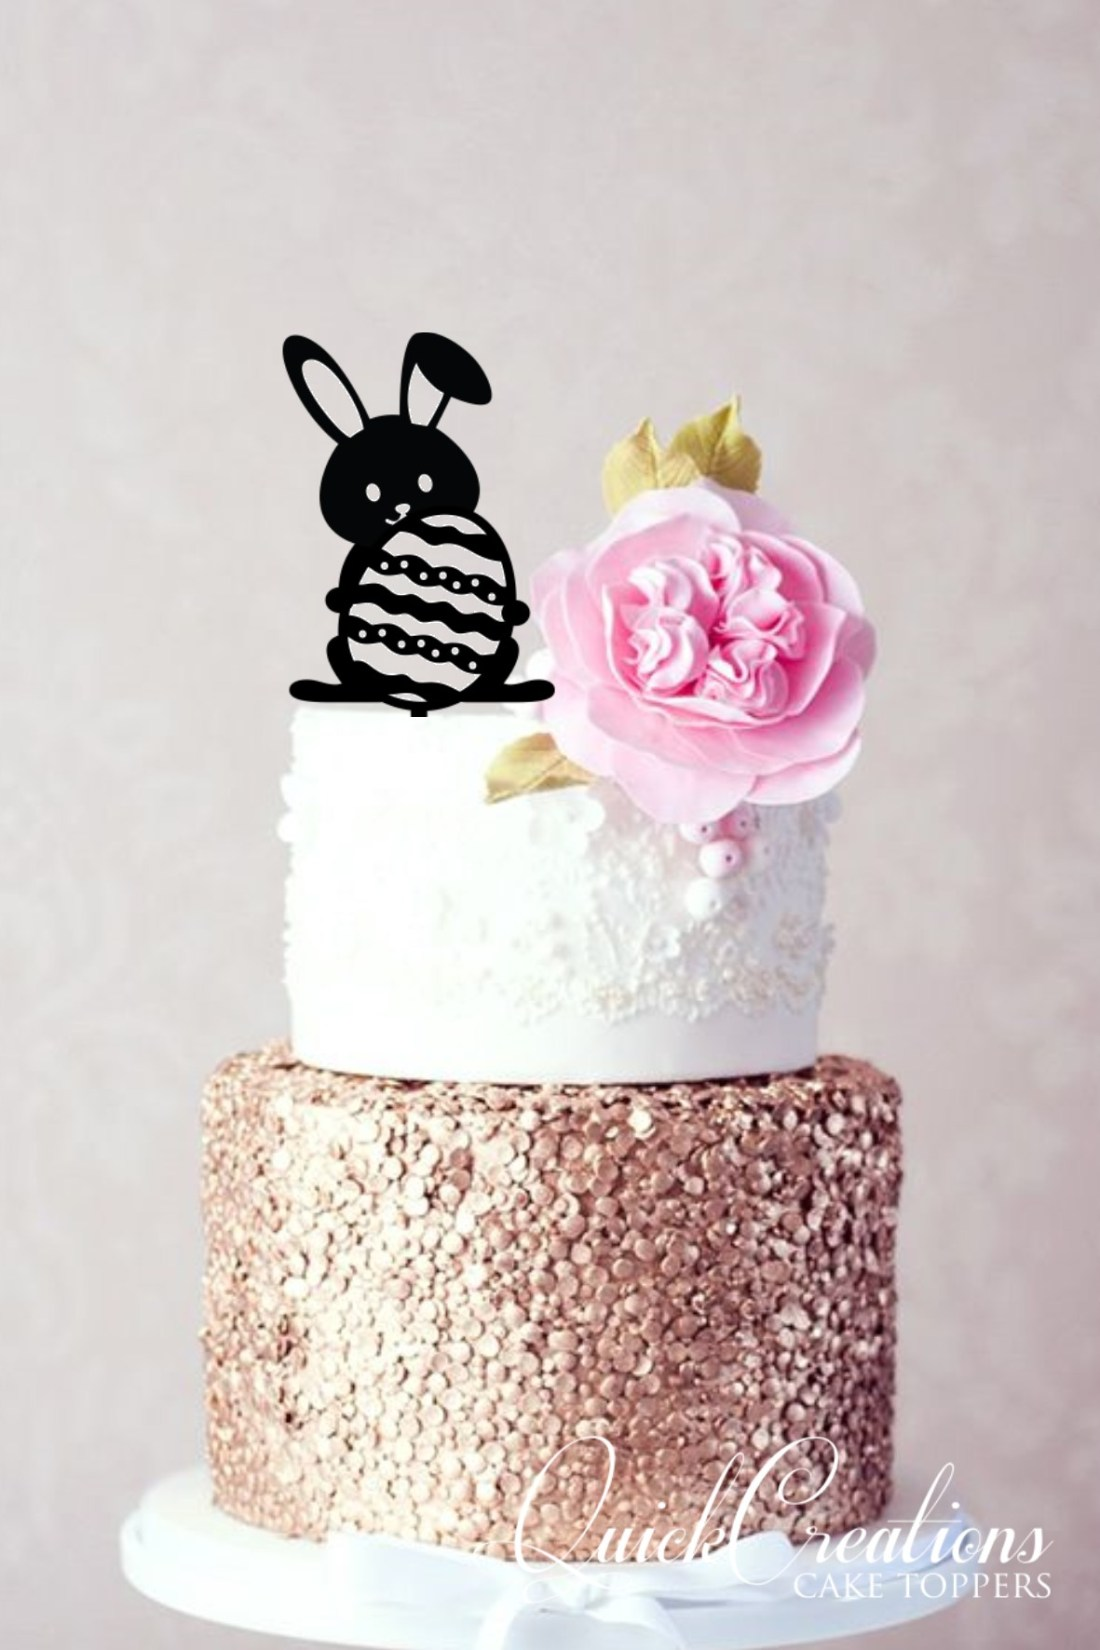 Quick Creations Cake Topper - Easter Bunny